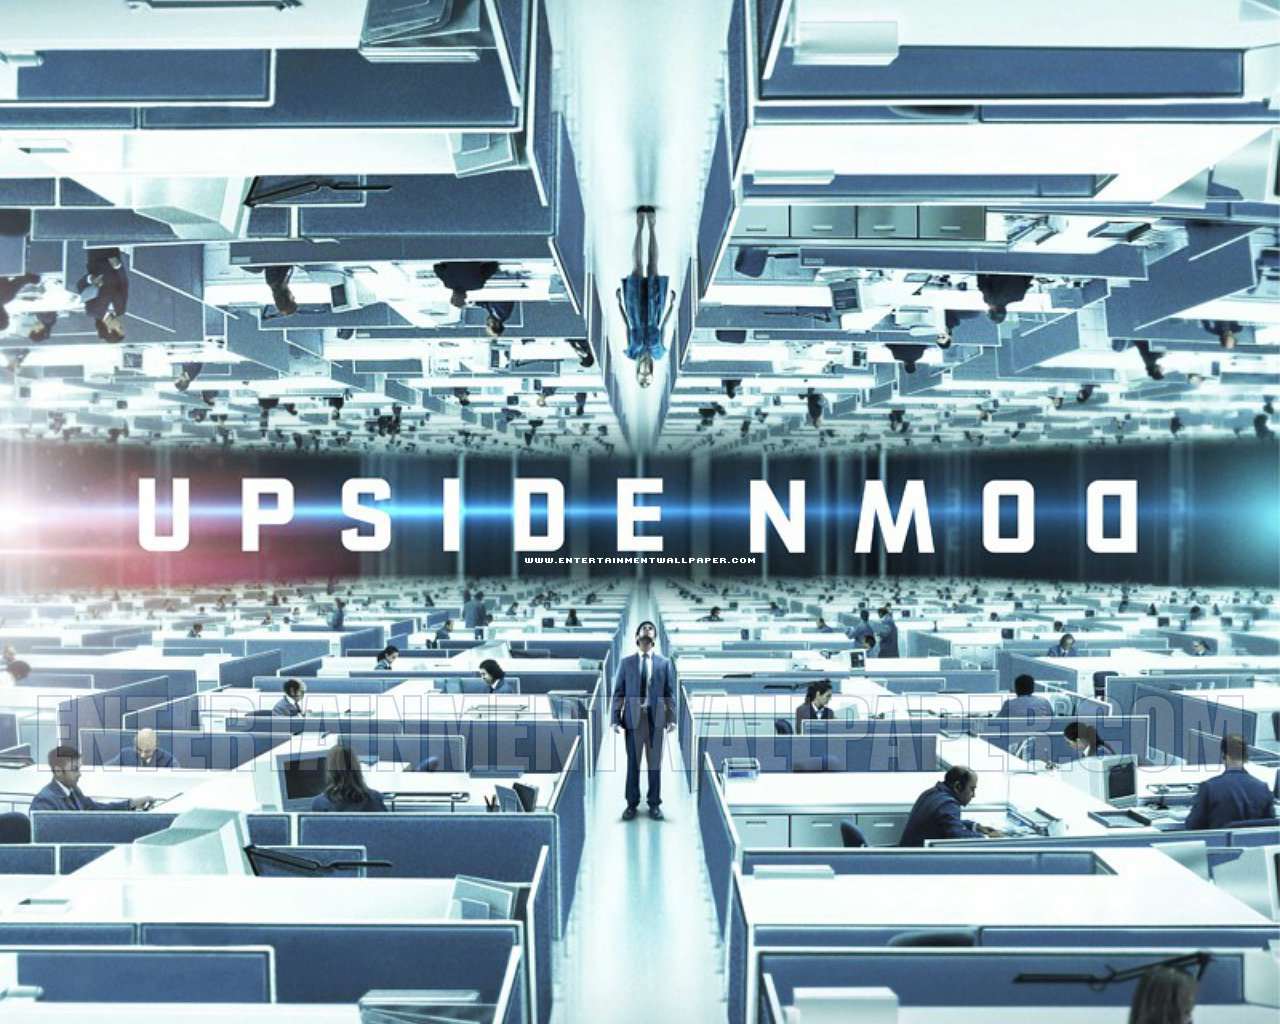 Upside Down Wallpaper   Gallery 1 Wide Screen HD Download 1280x1024